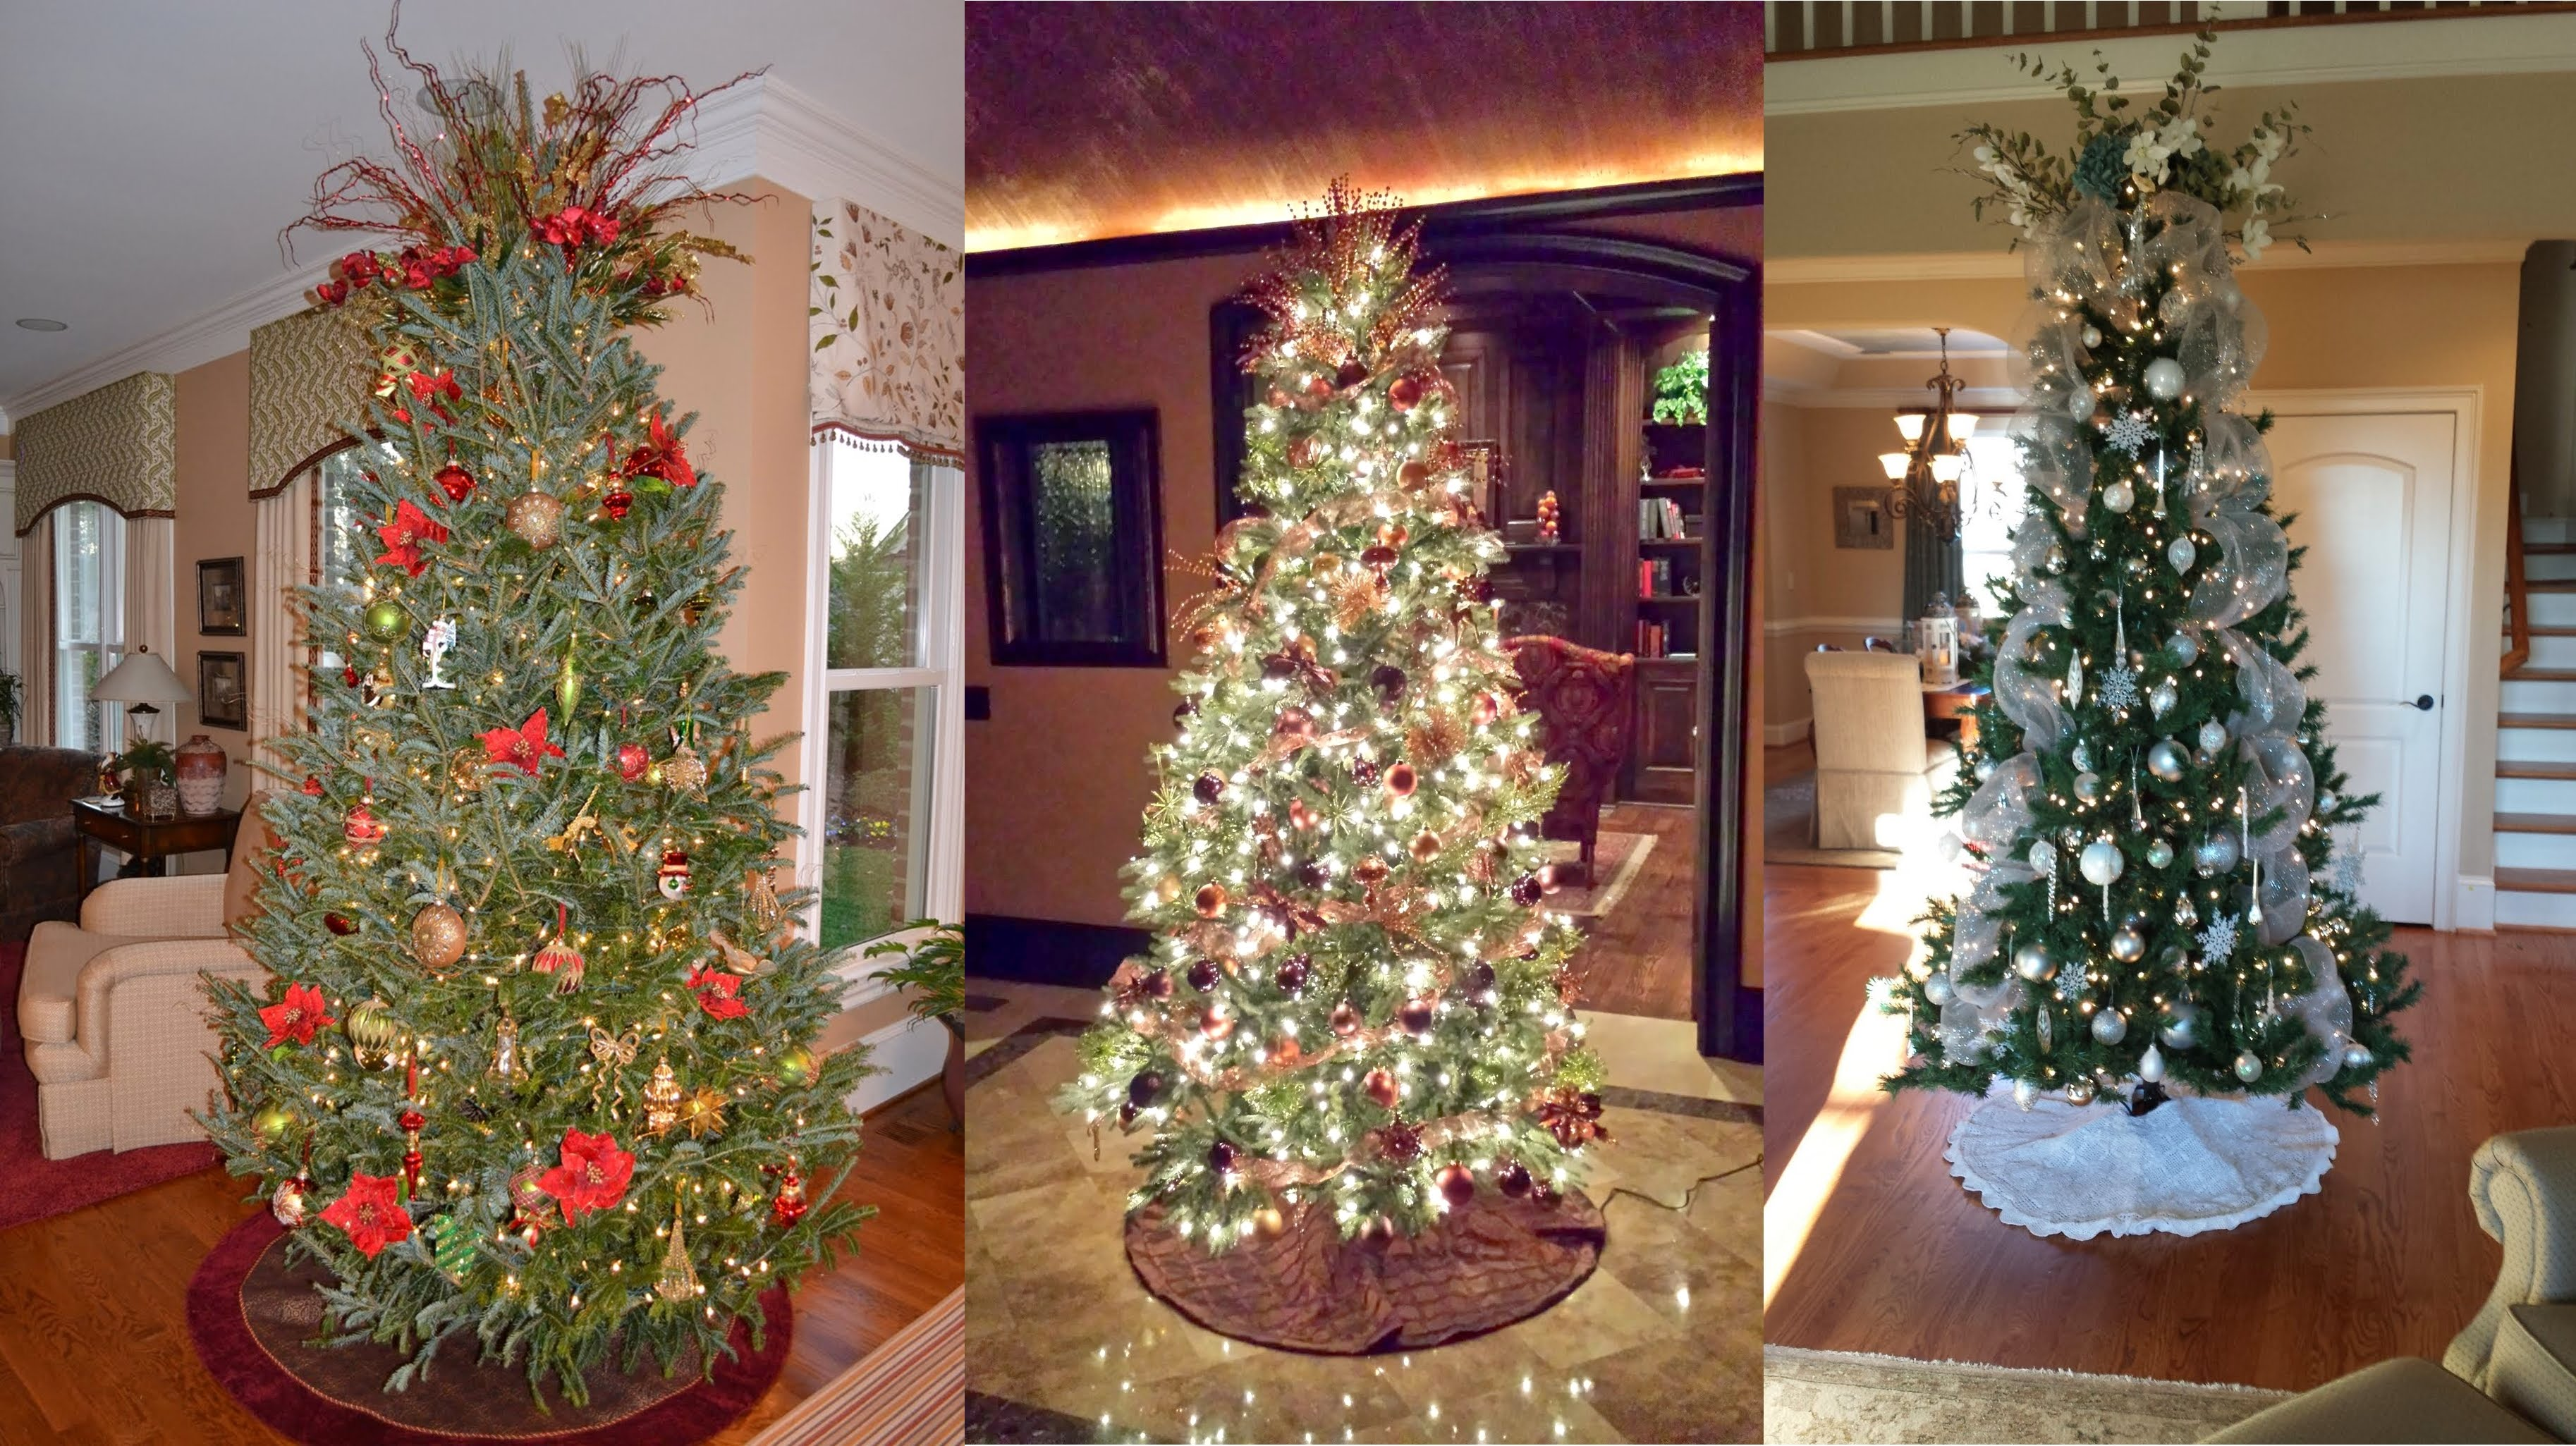 charlotte nc holiday decorating services real estate home staging interior room redesign interior design services charlotte nc